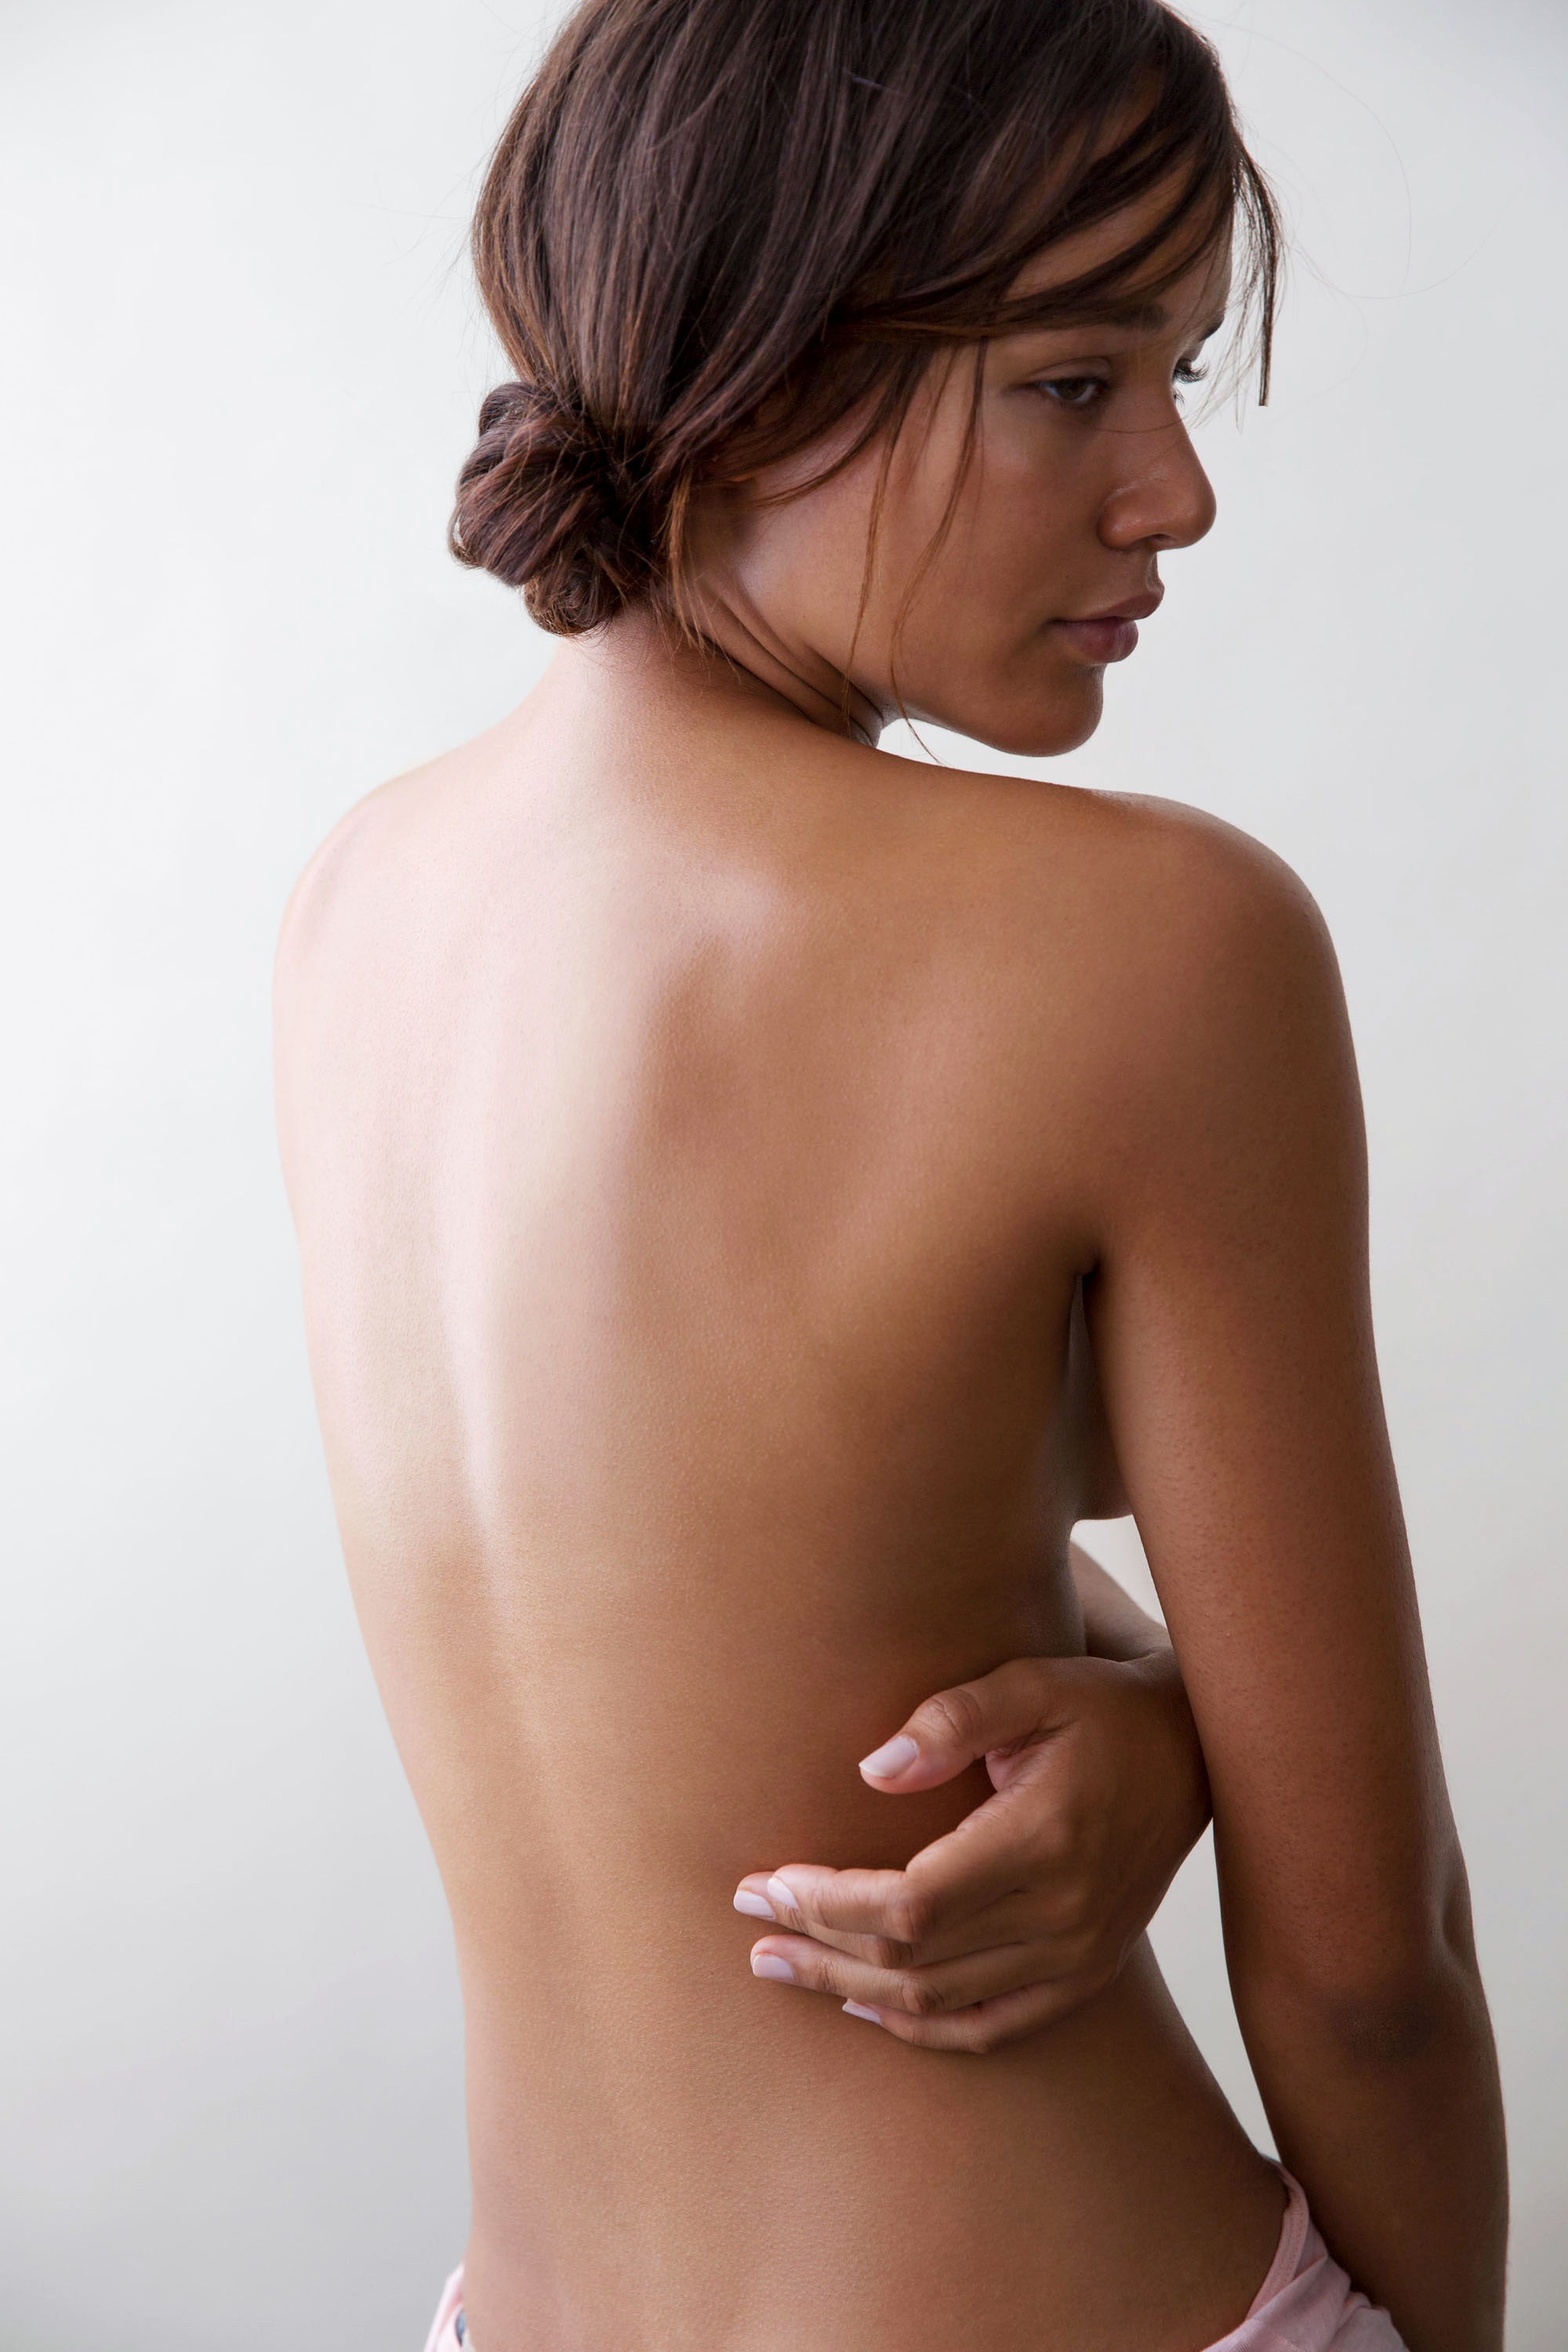 back health muscles pain shoulders woman